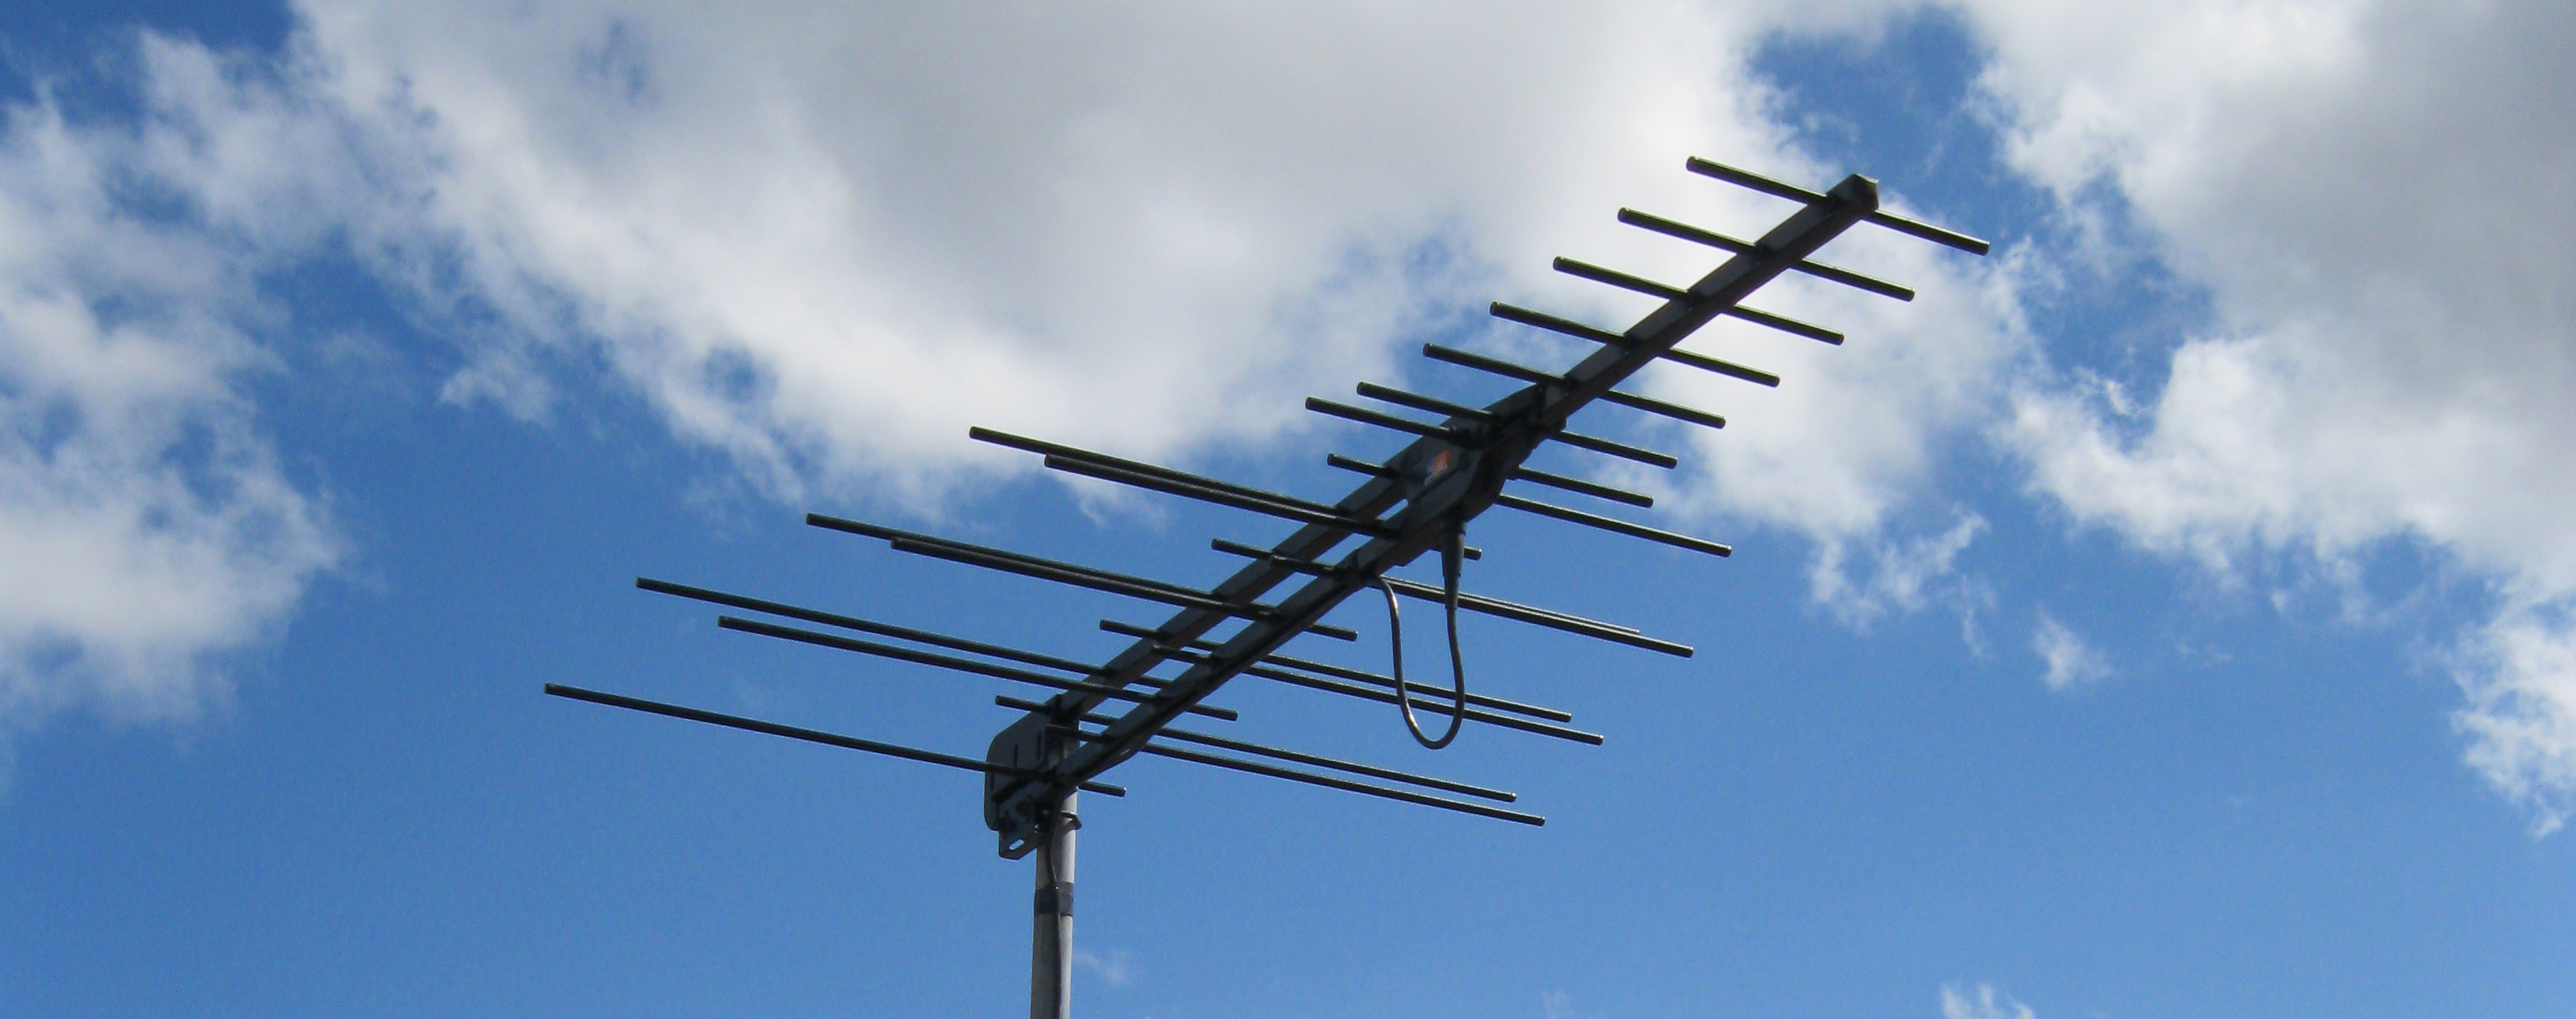 Book a digital antenna installer in #Melbourne, and